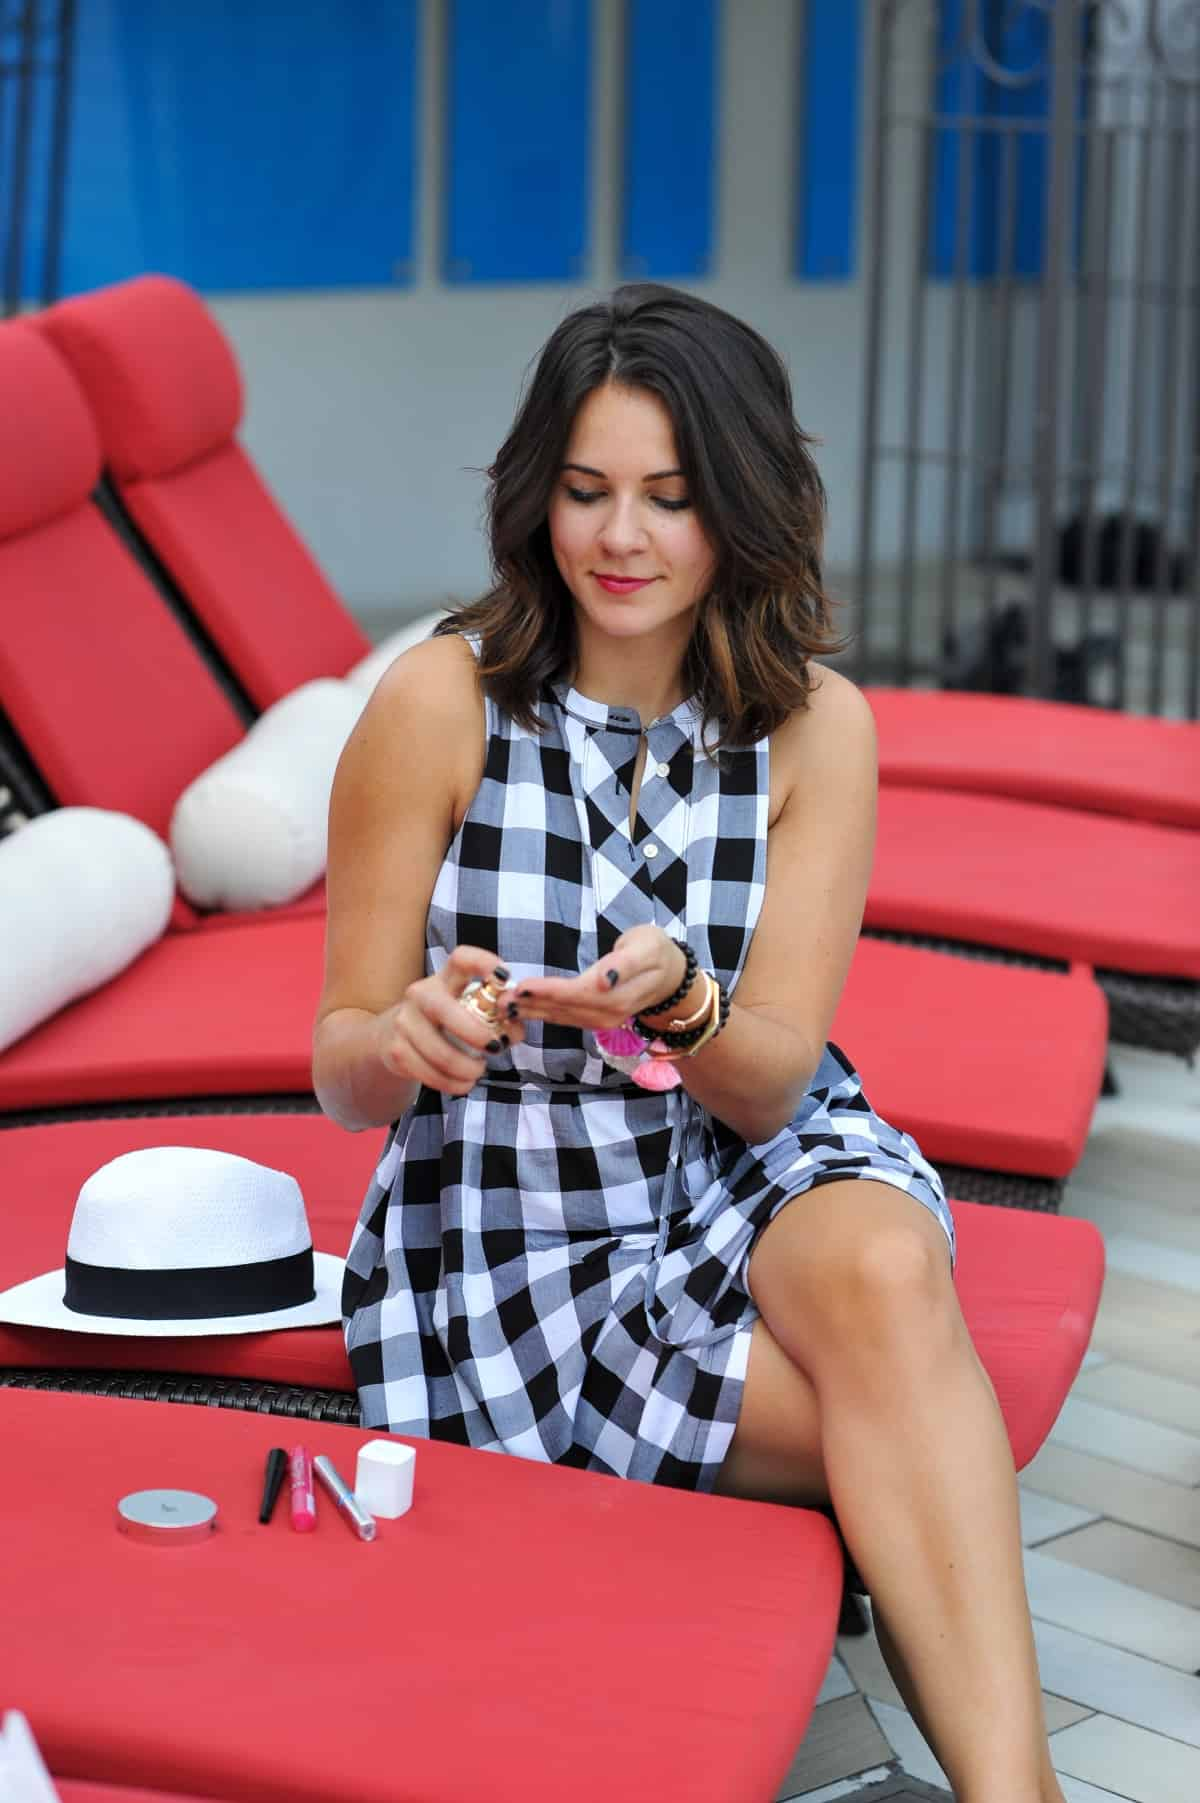 beauty tips and tricks for summer heat, pool party makeup ideas via @mystylevita